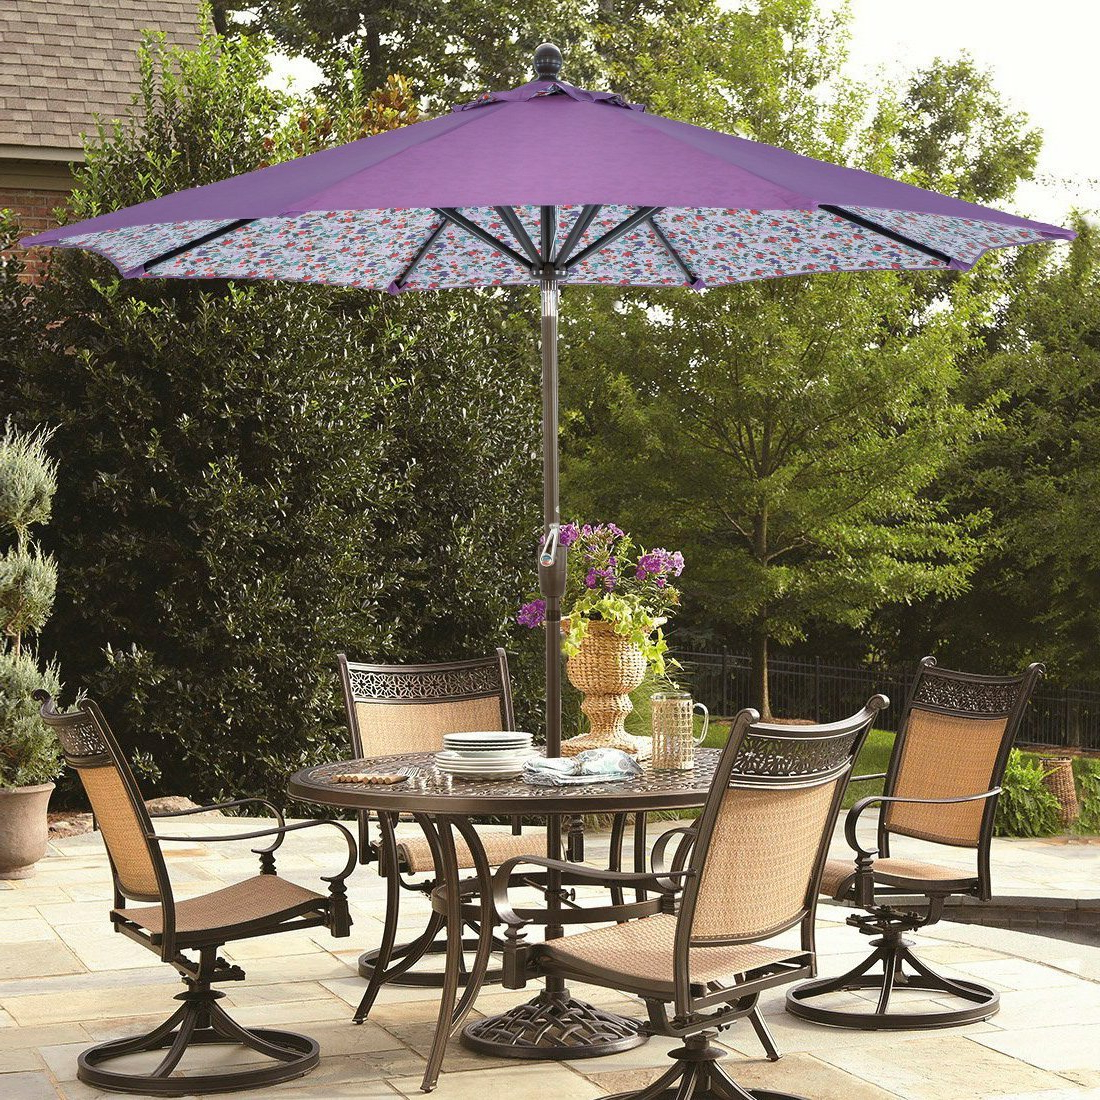 Hutson 9' Market Umbrella Intended For Most Popular Hawkinge Market Umbrellas (View 12 of 20)